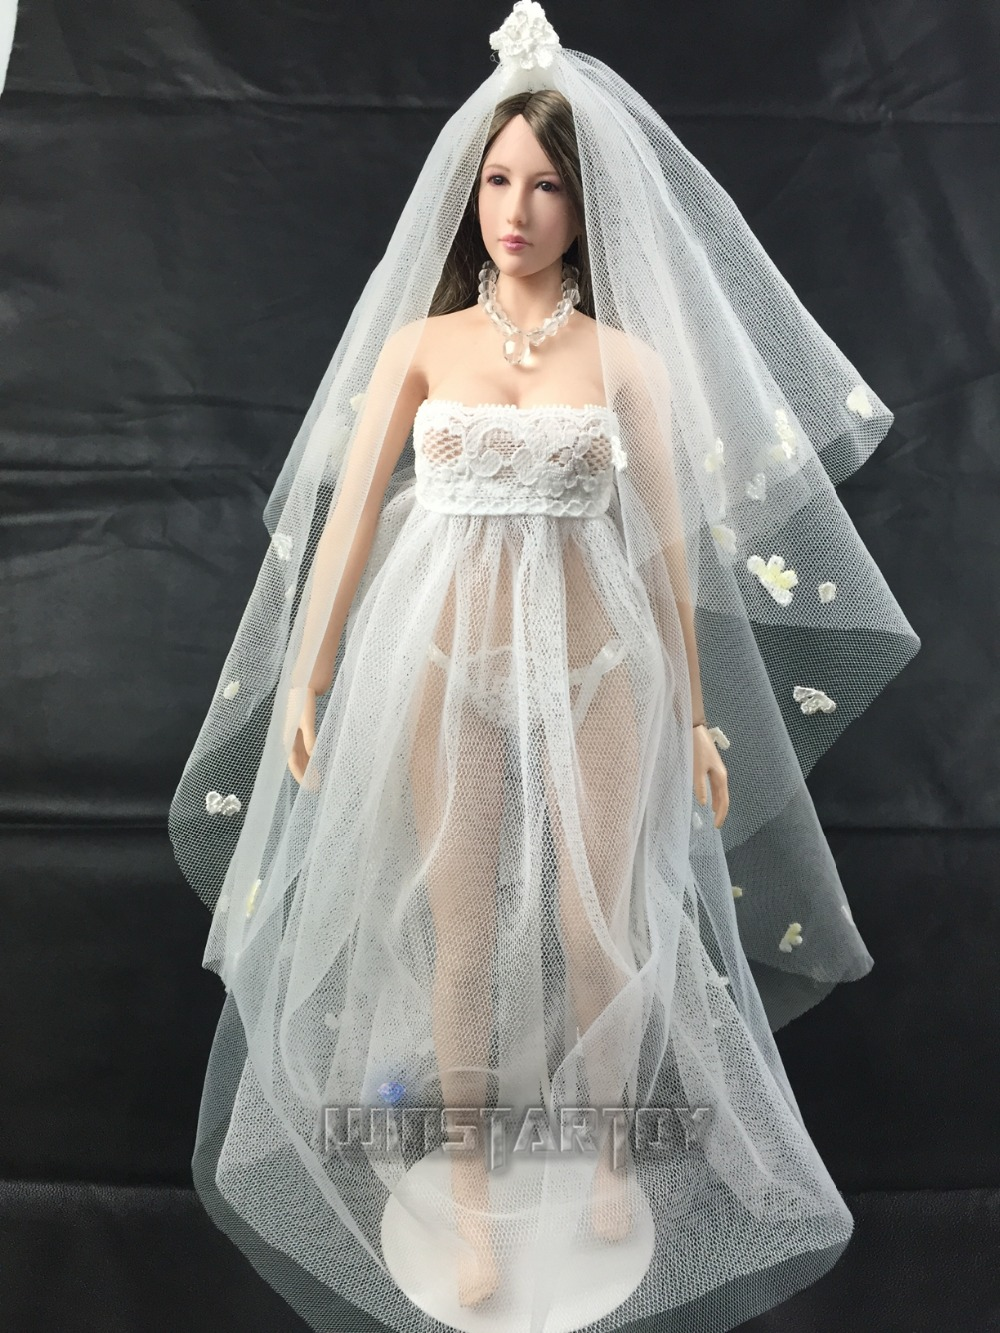 full hand made 1 6 Sexy lace wedding dress B version for Phicen Hot stuff  Jodoll OB UD LD doll action figure DIY-in Action   Toy Figures from Toys    Hobbies ... 7bee52c70253